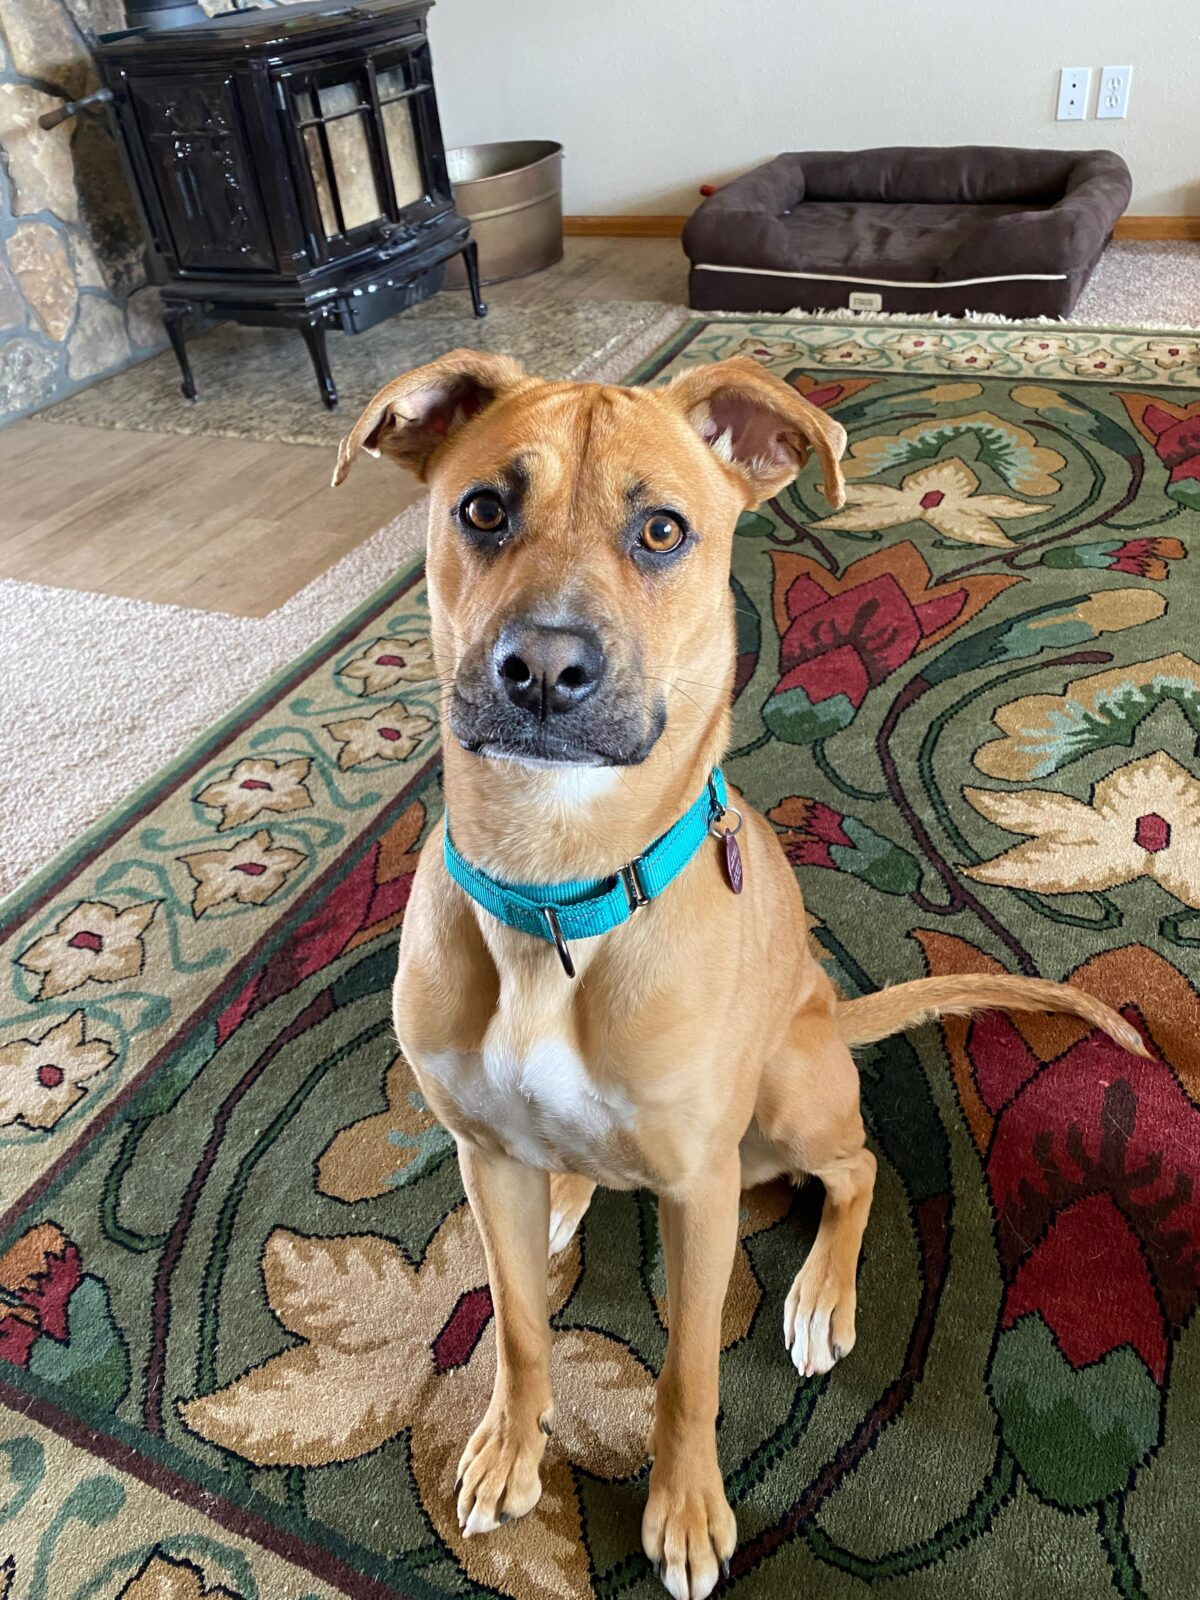 Collars, tags and chips needed to return lost pets